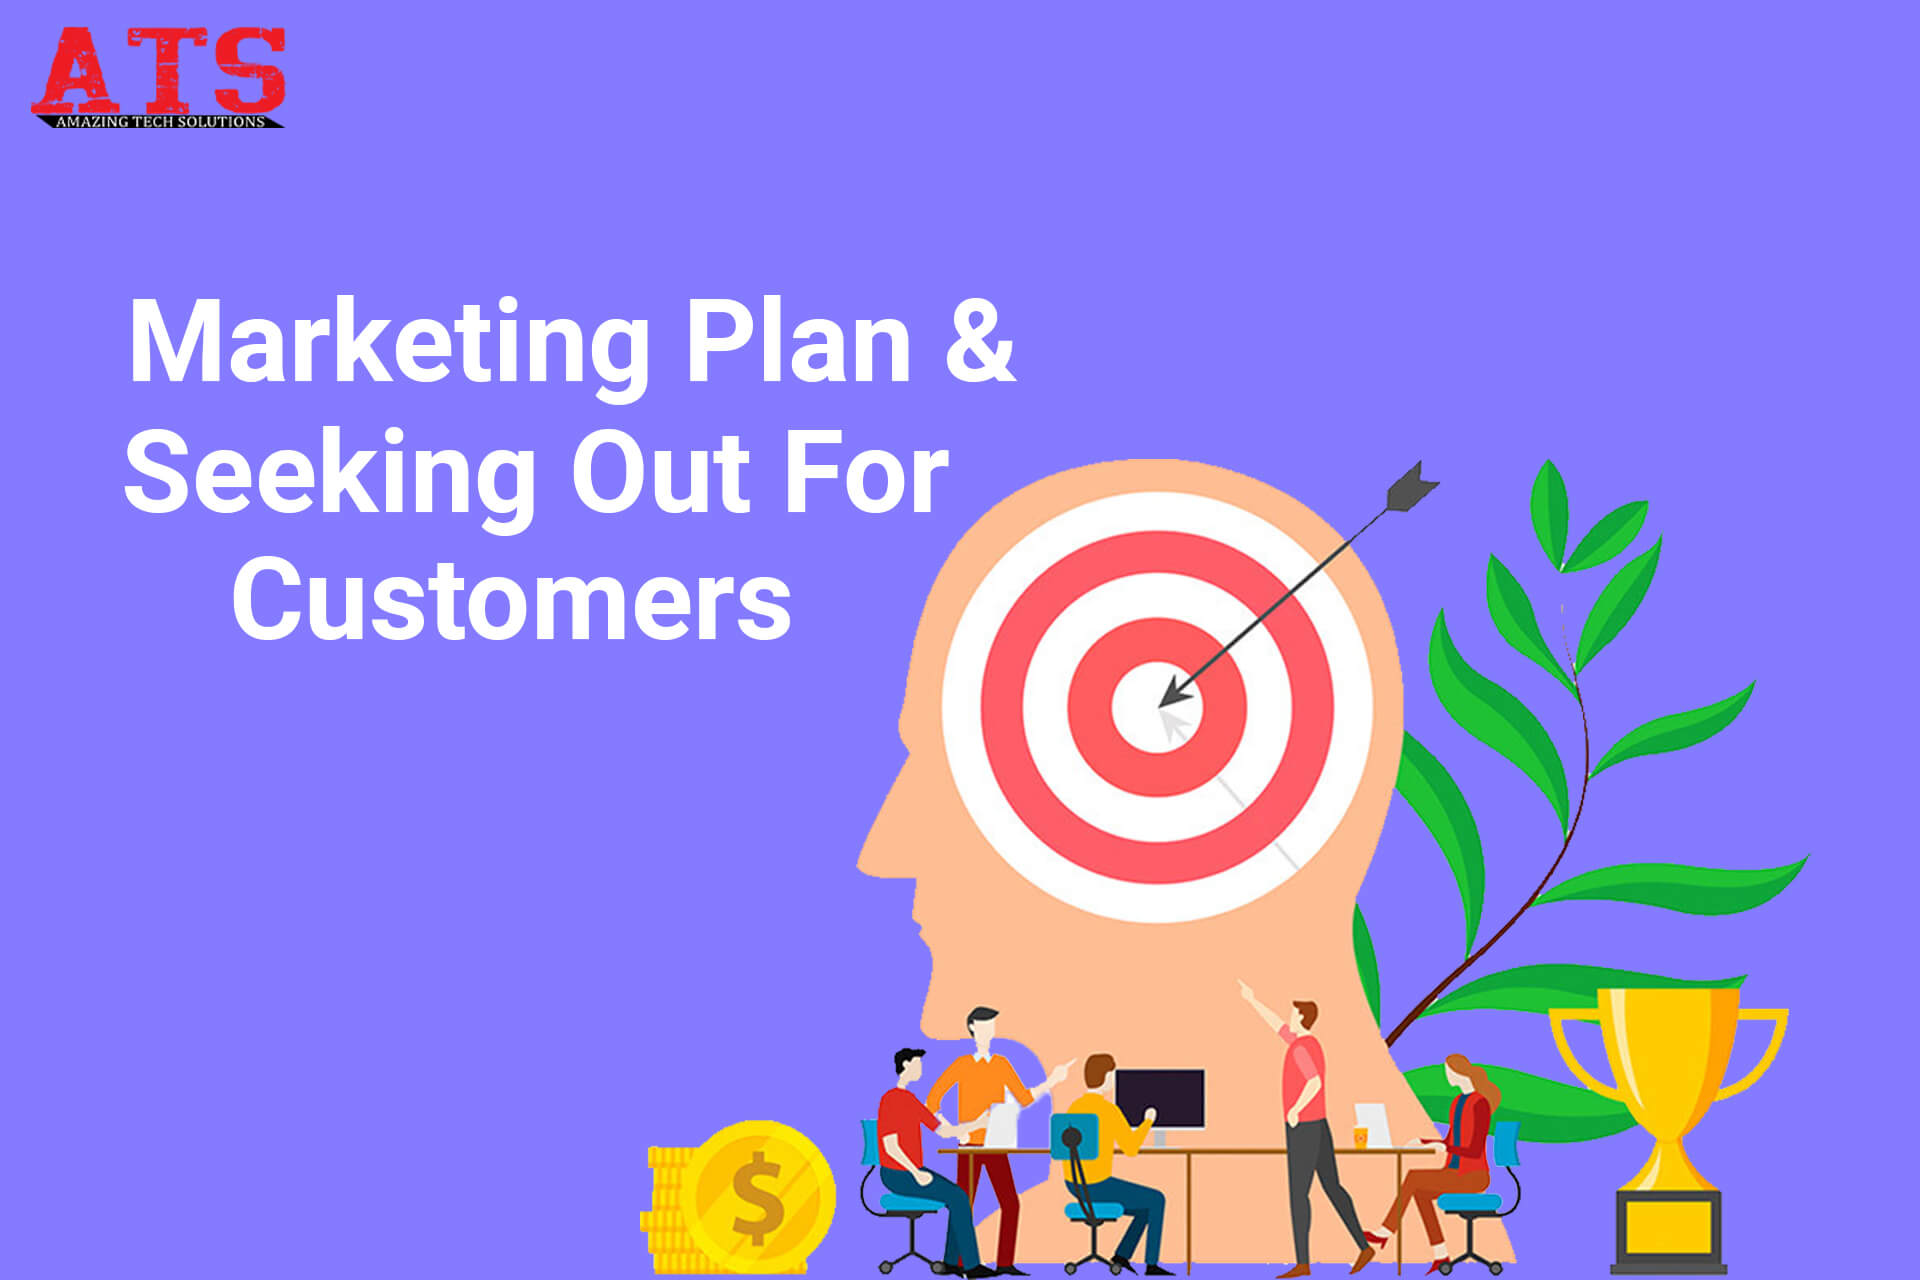 Marketing Plan & Seeking Out For Customers